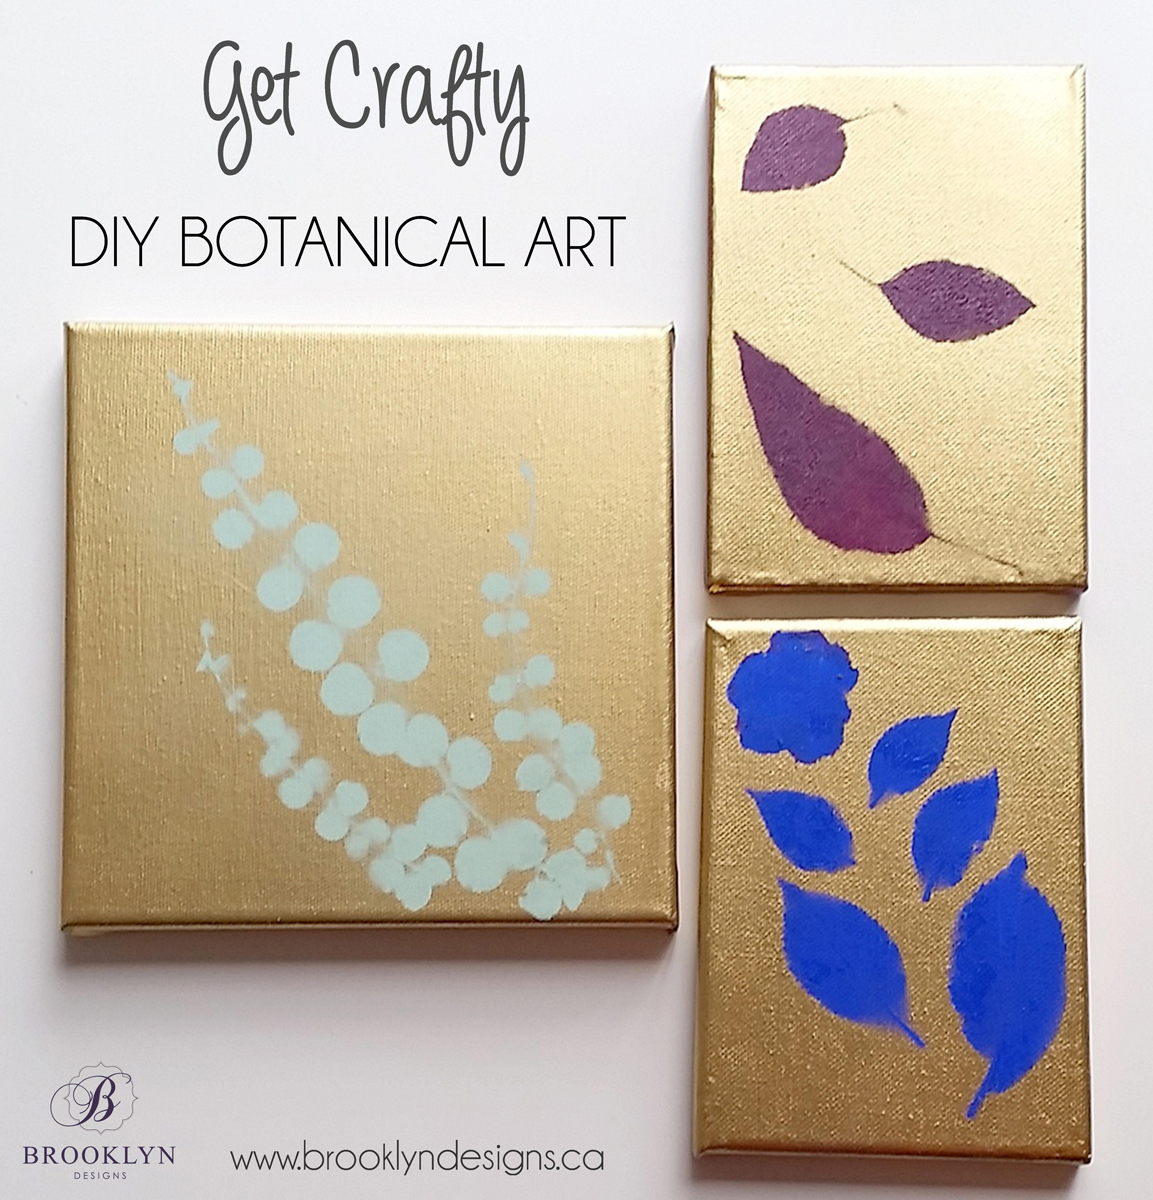 GET CRAFTY: DIY Botanical Wall Art - Brooklyn Designs